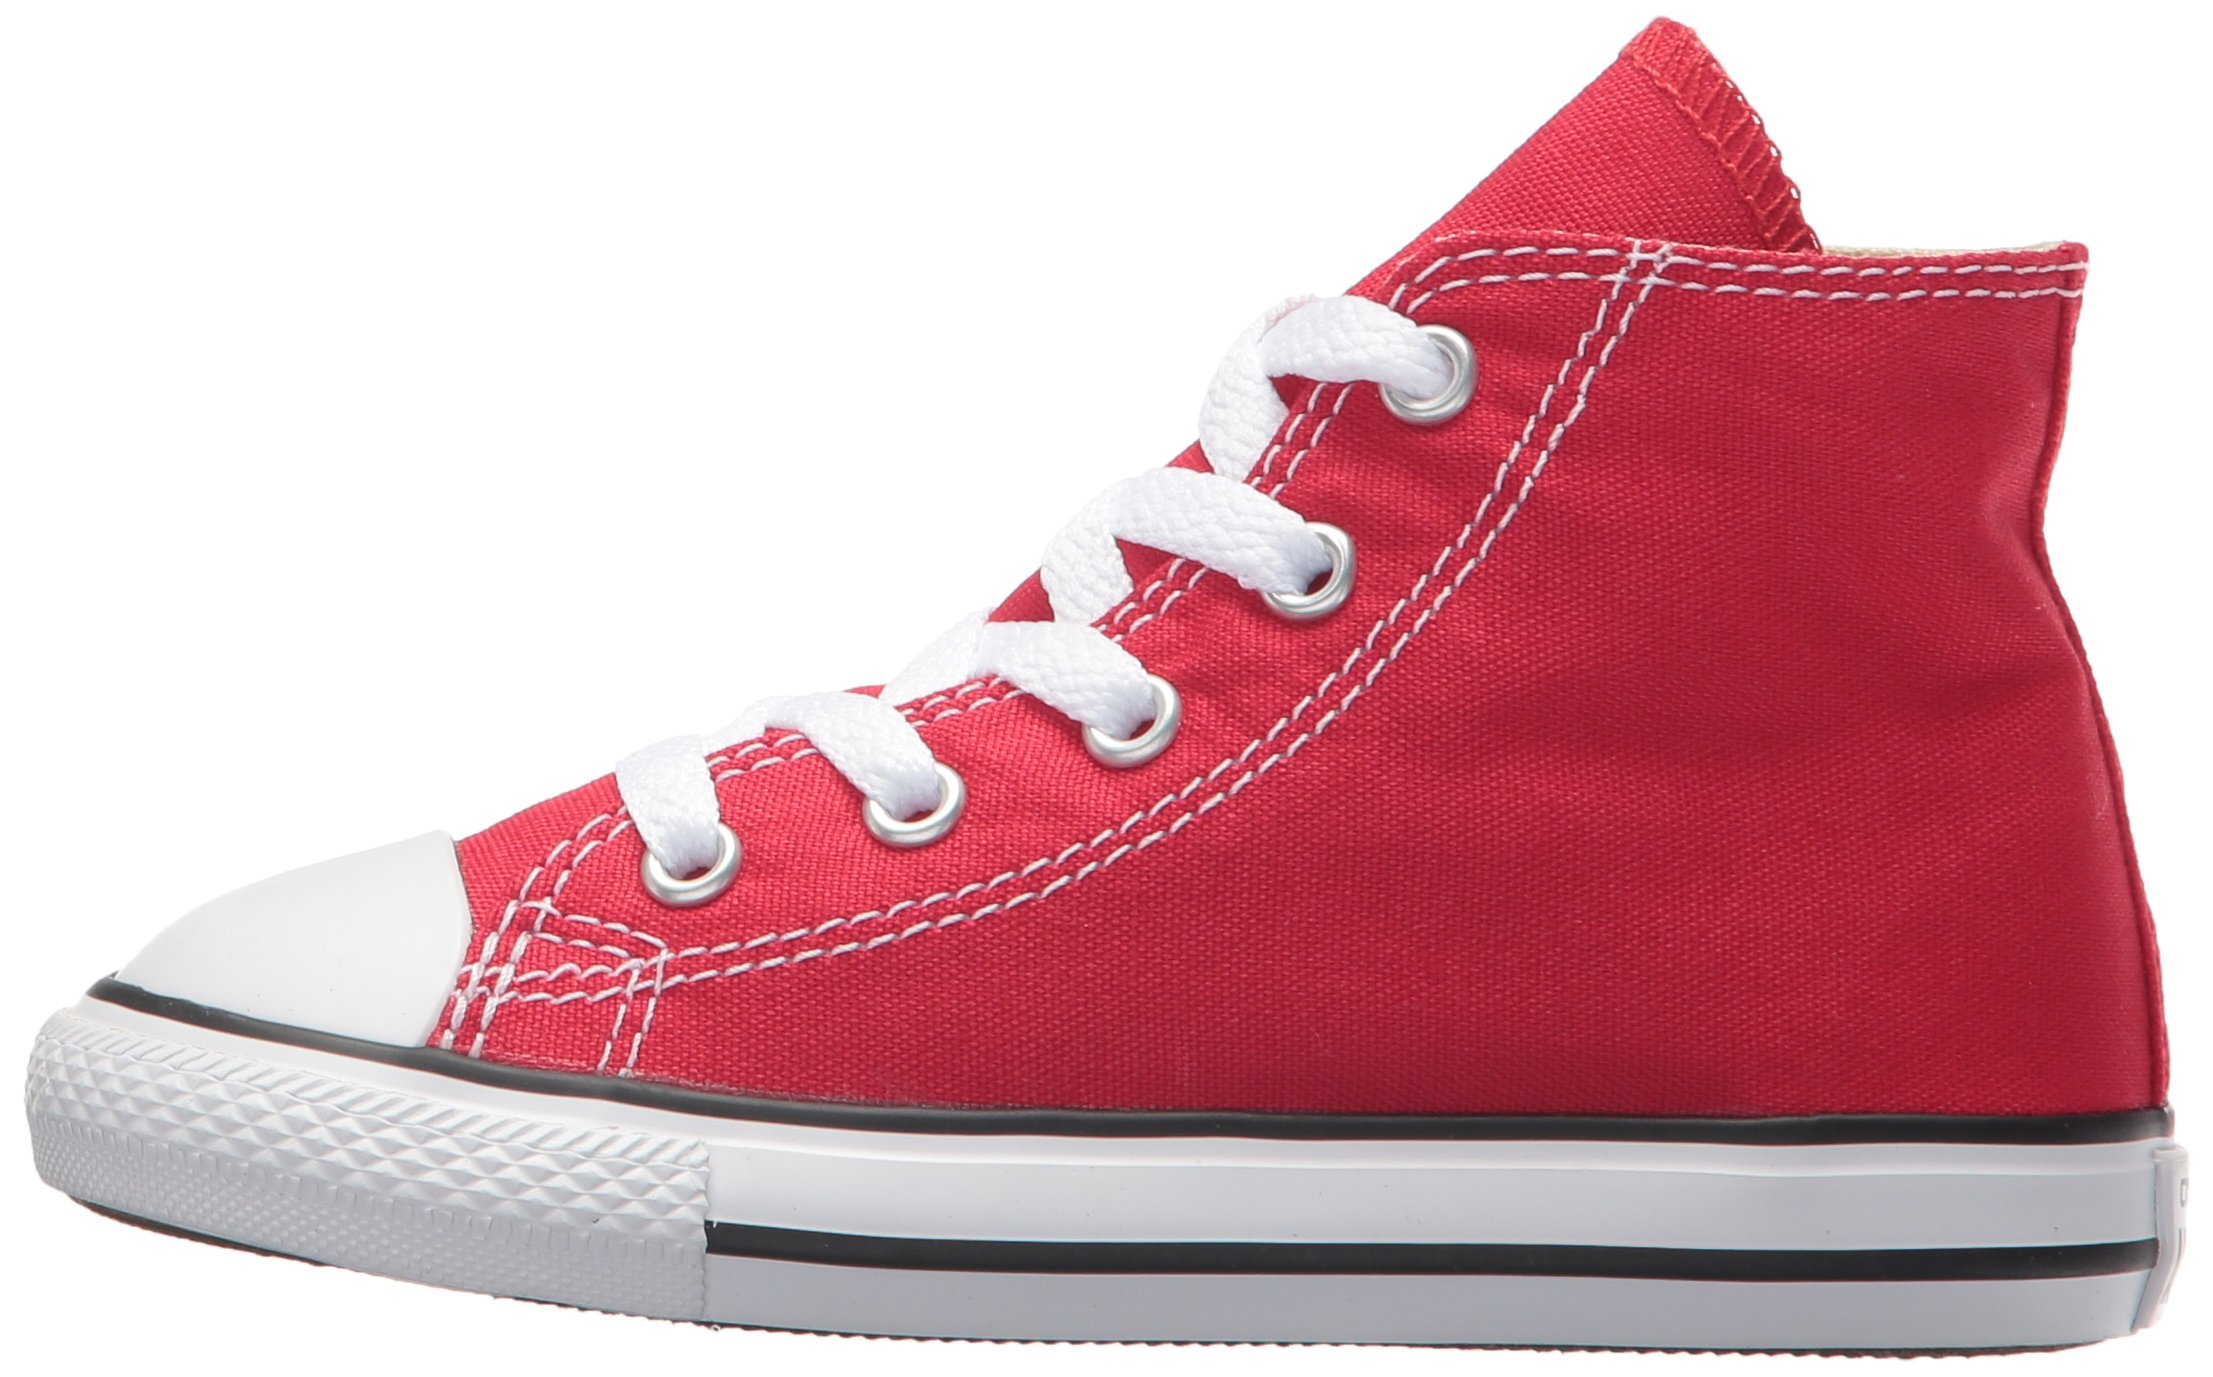 Converse Kids Chuck Taylor Classic Hi Red Sneaker - 10.5 by Converse (Image #5)